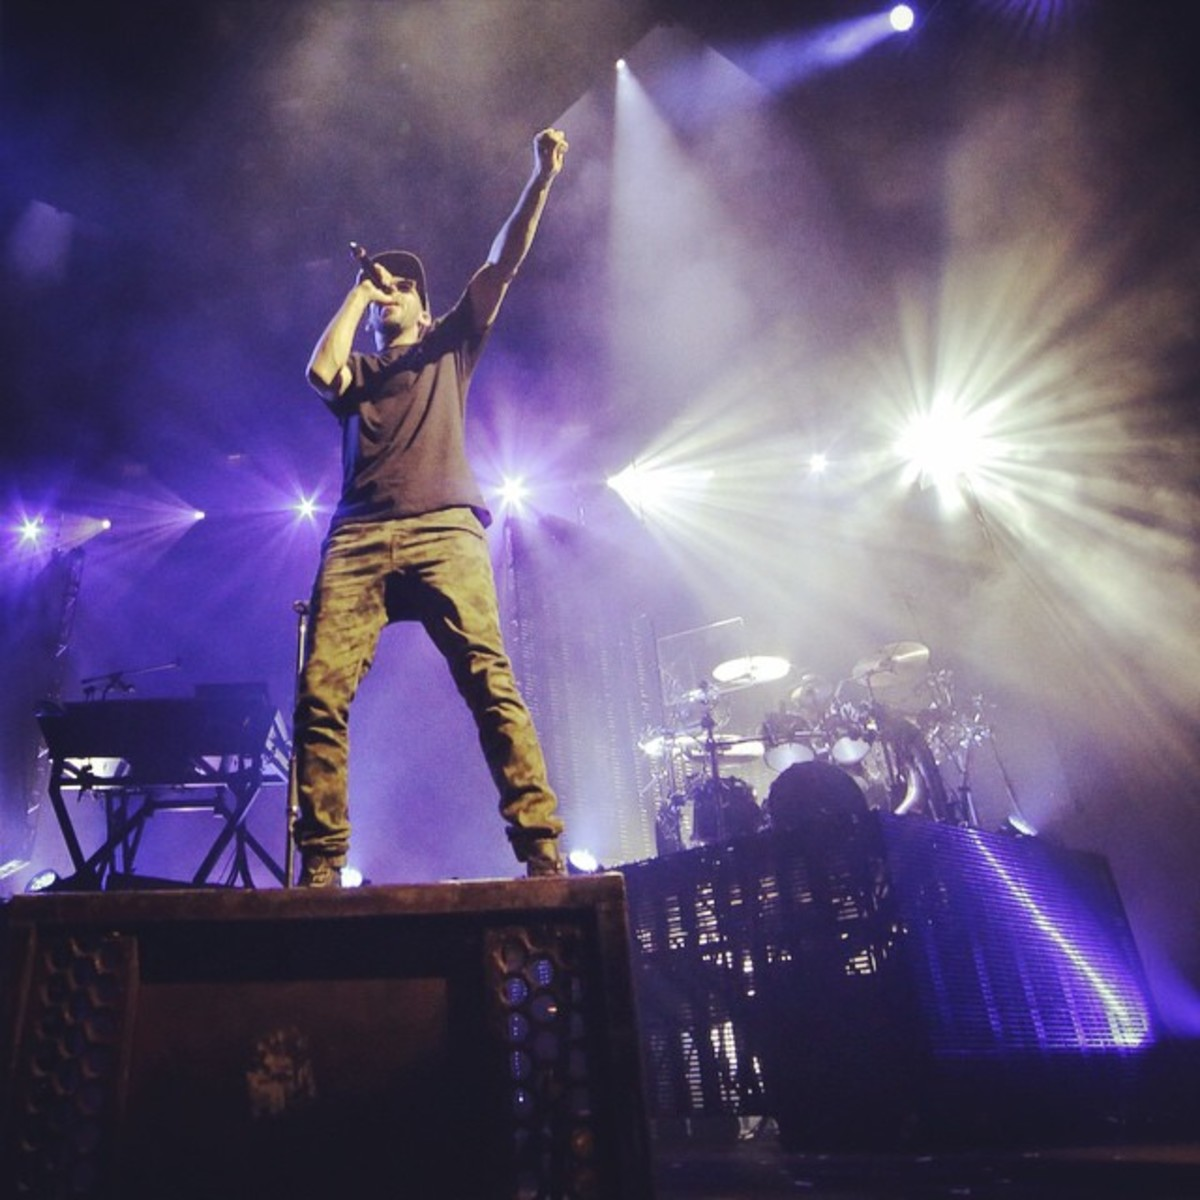 Mike Shinoda on stage with the band